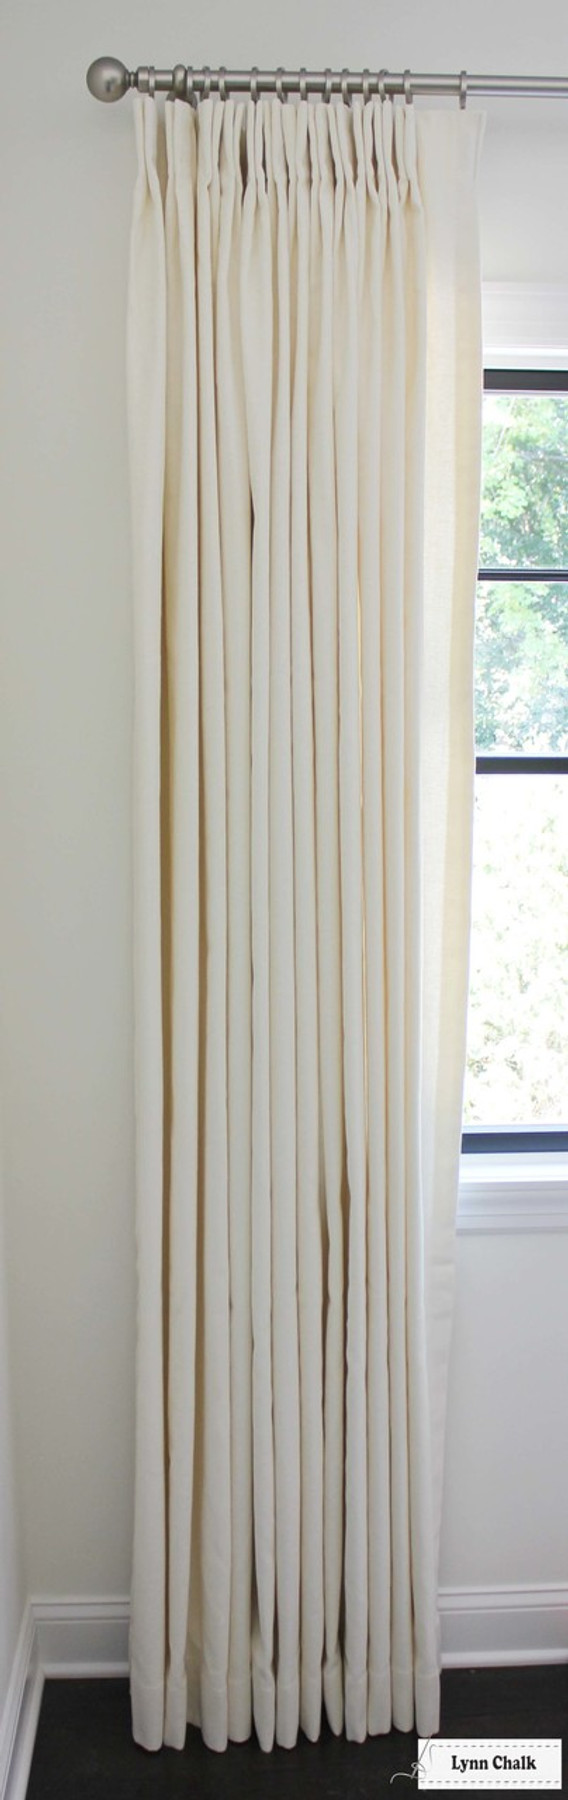 Trend 01838T Coconut (2 1/2 Widths).  Hardware is Aria Abode Collection in Brushed Nickel.